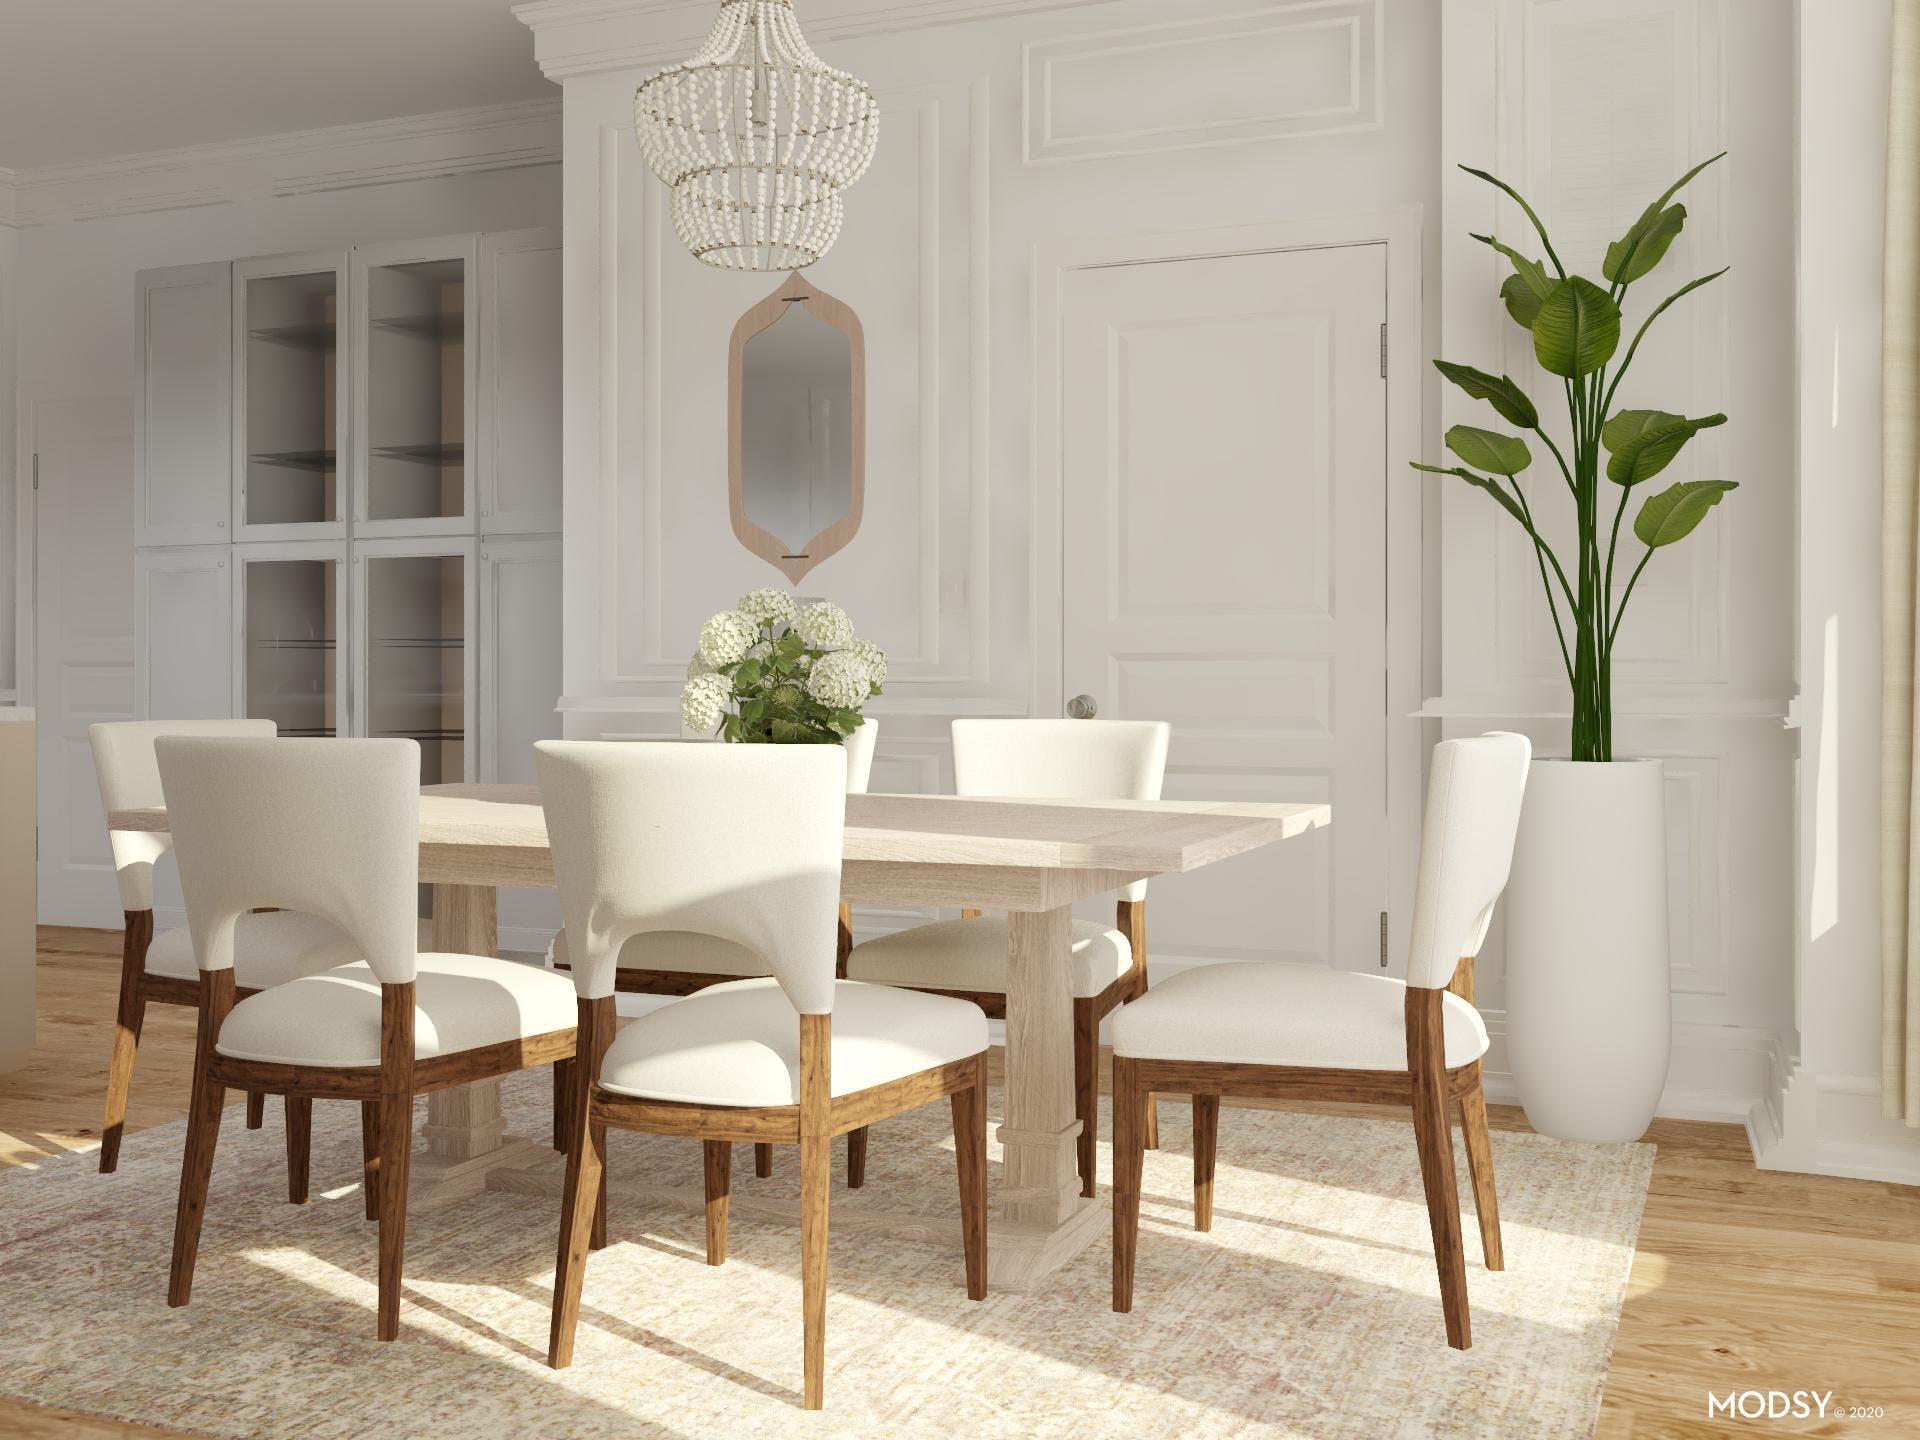 Glamor Meets Nature in this Dining Room